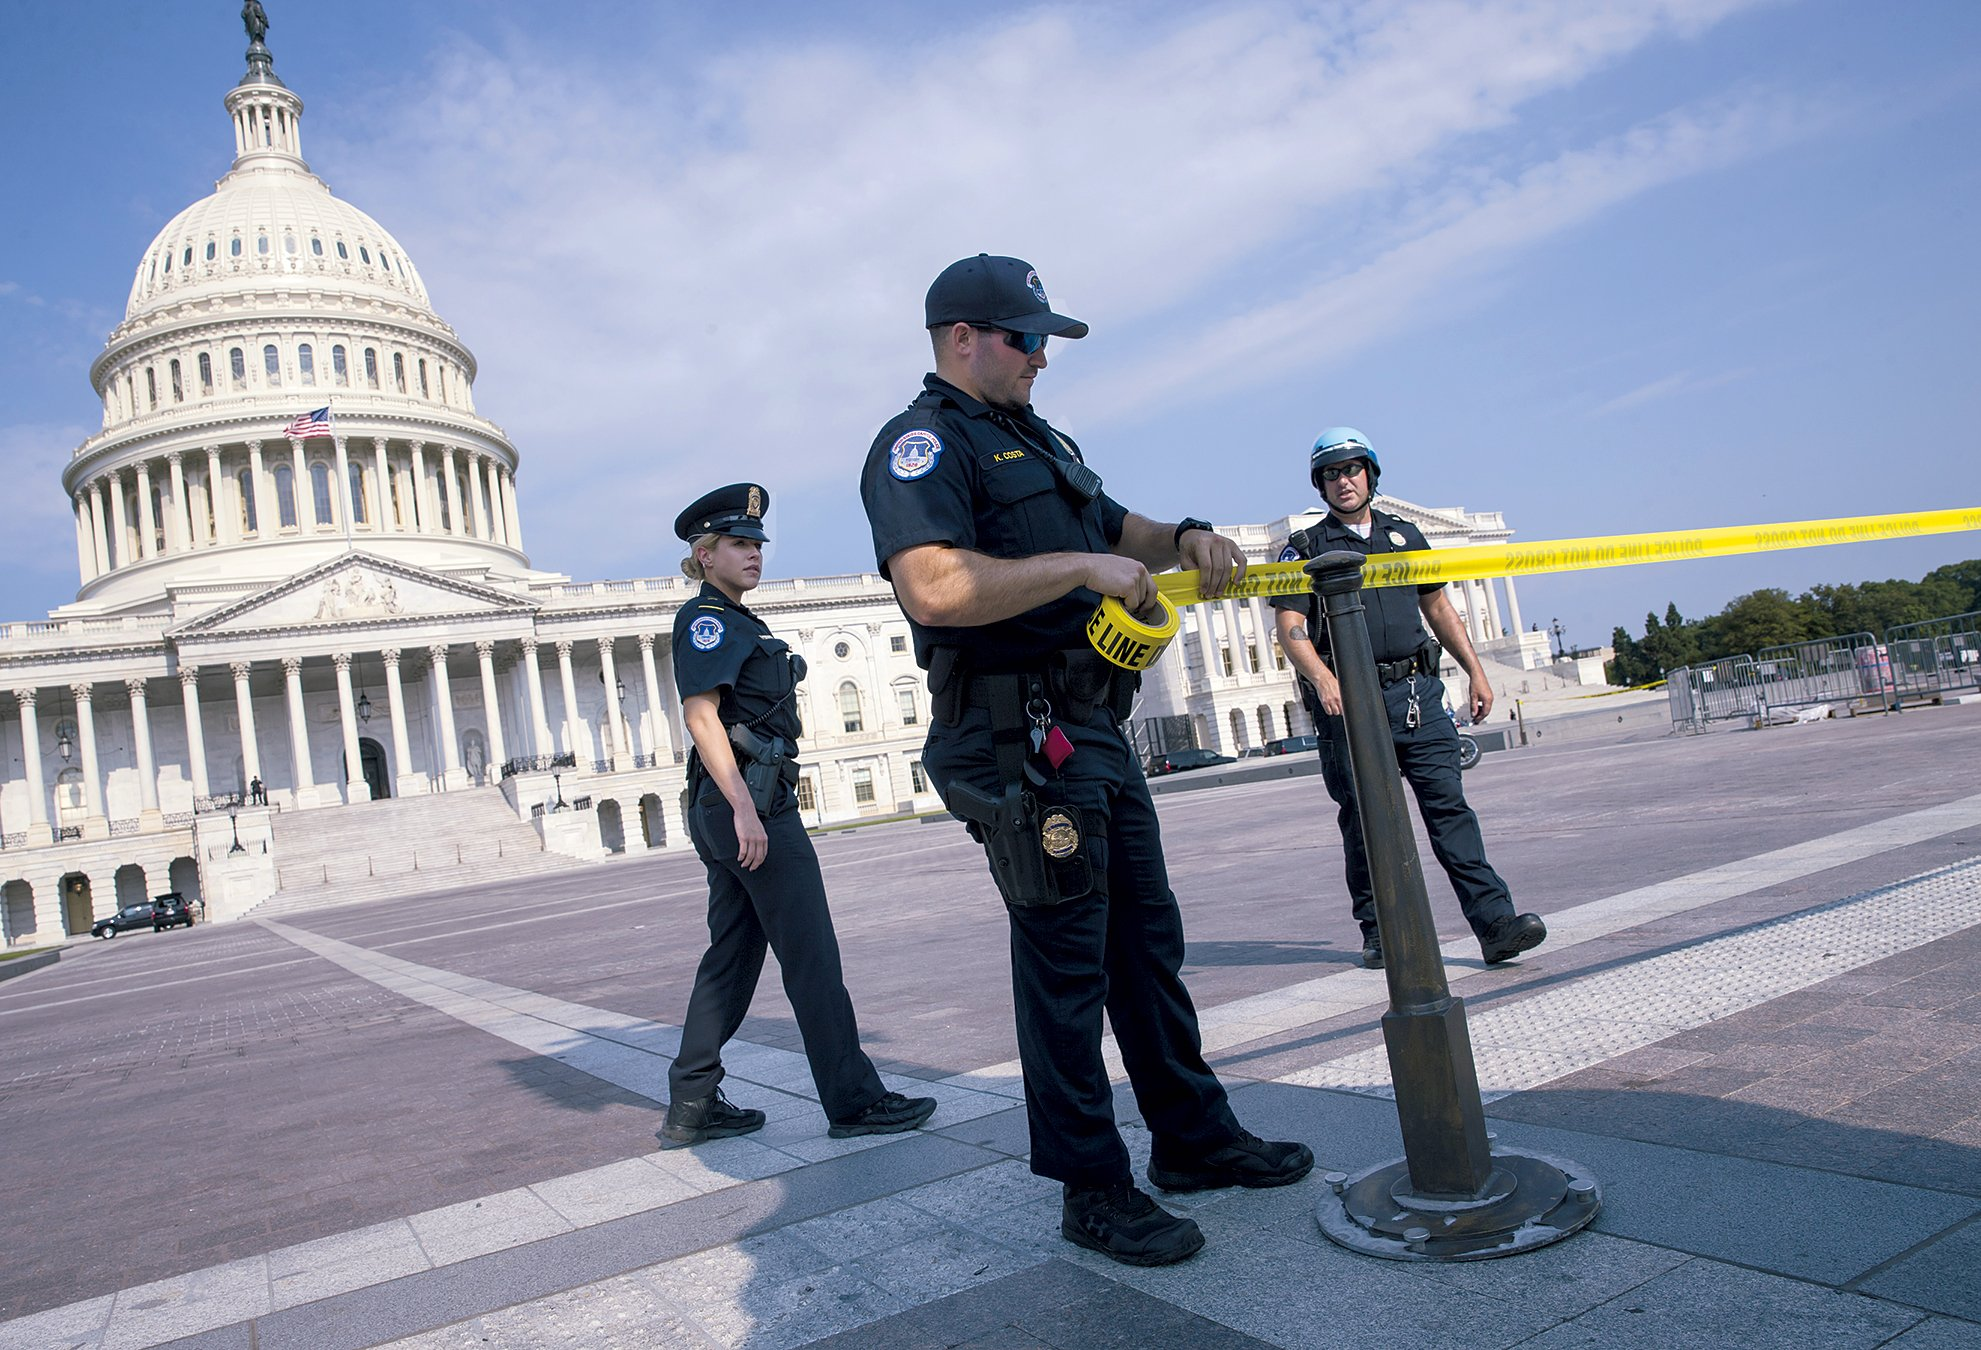 After the shooting, members returned to the Capitol to get back to work. Photograph of Capitol by Eric Thayer/Bloomberg via Getty Images.